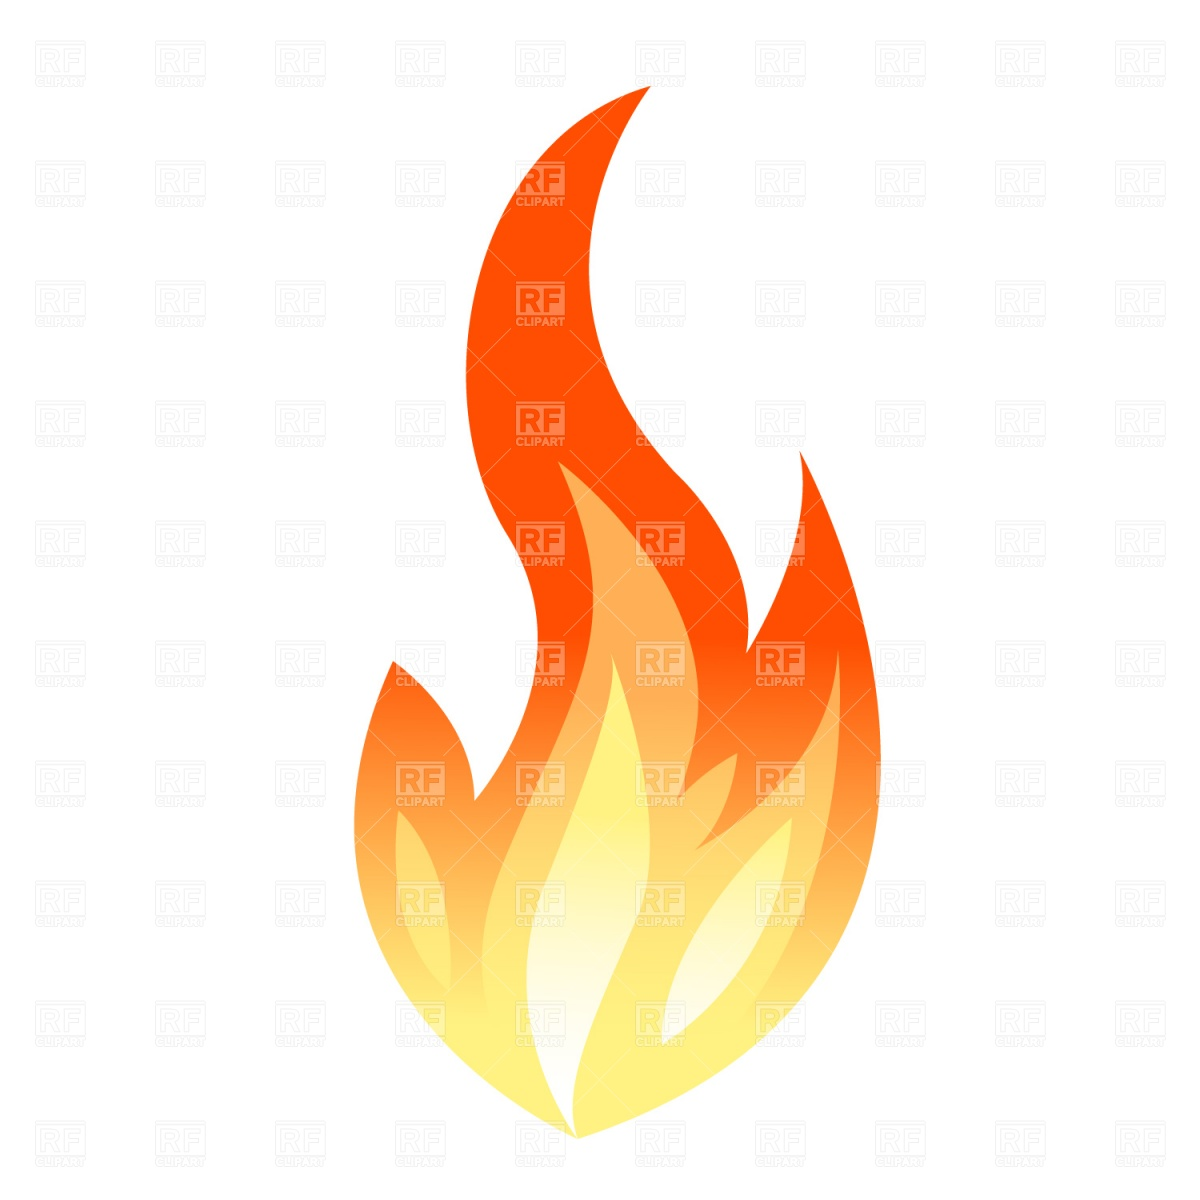 Clipart flames free jpg freeuse stock Flame Clip Art Free | Clipart Panda - Free Clipart Images jpg freeuse stock